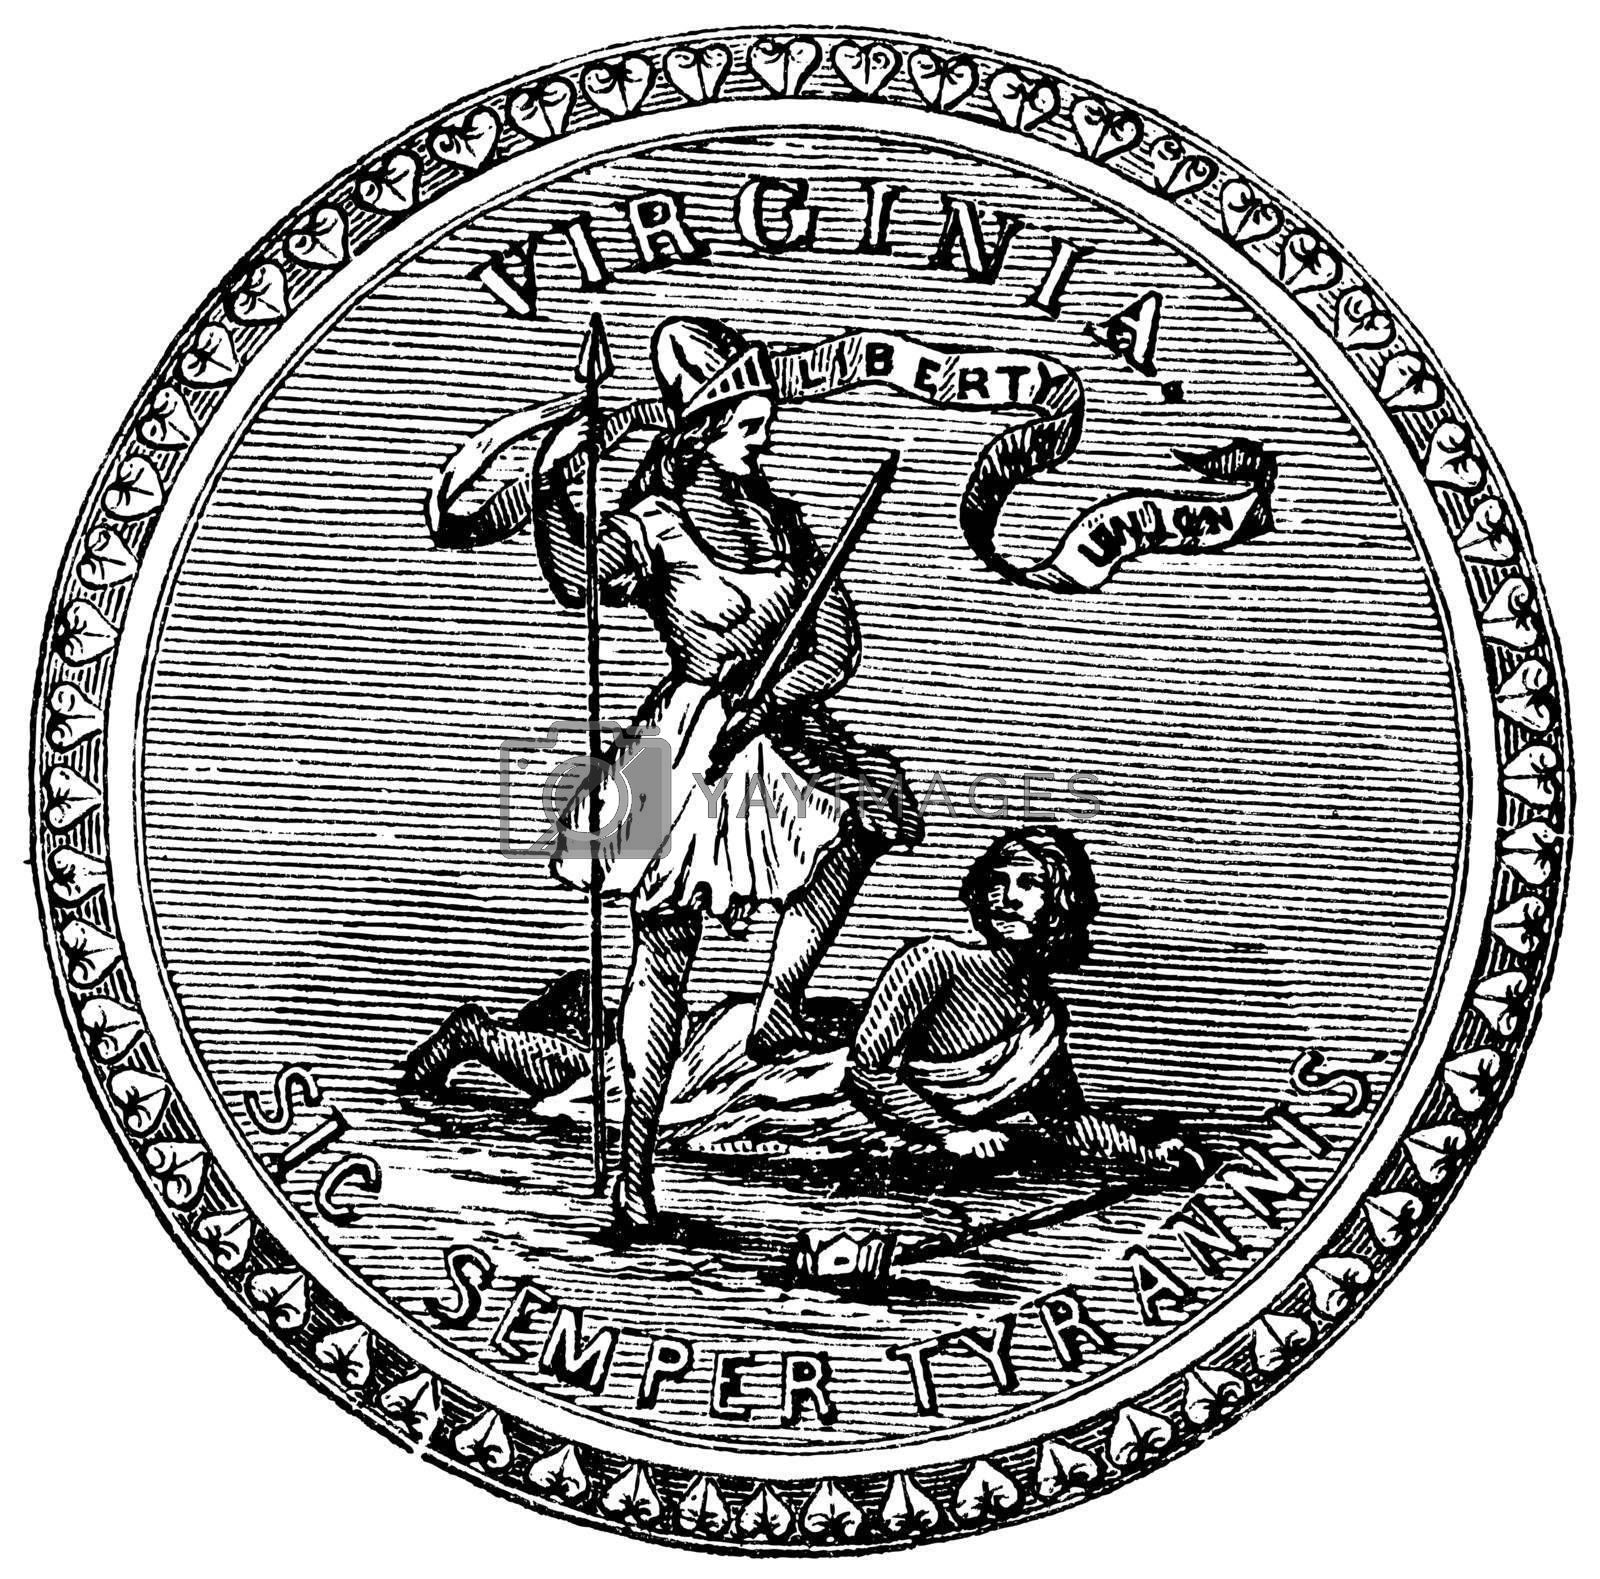 Seal of the State of Virginia, USA, vintage engraved illustration. Trousset encyclopedia (1886 - 1891).